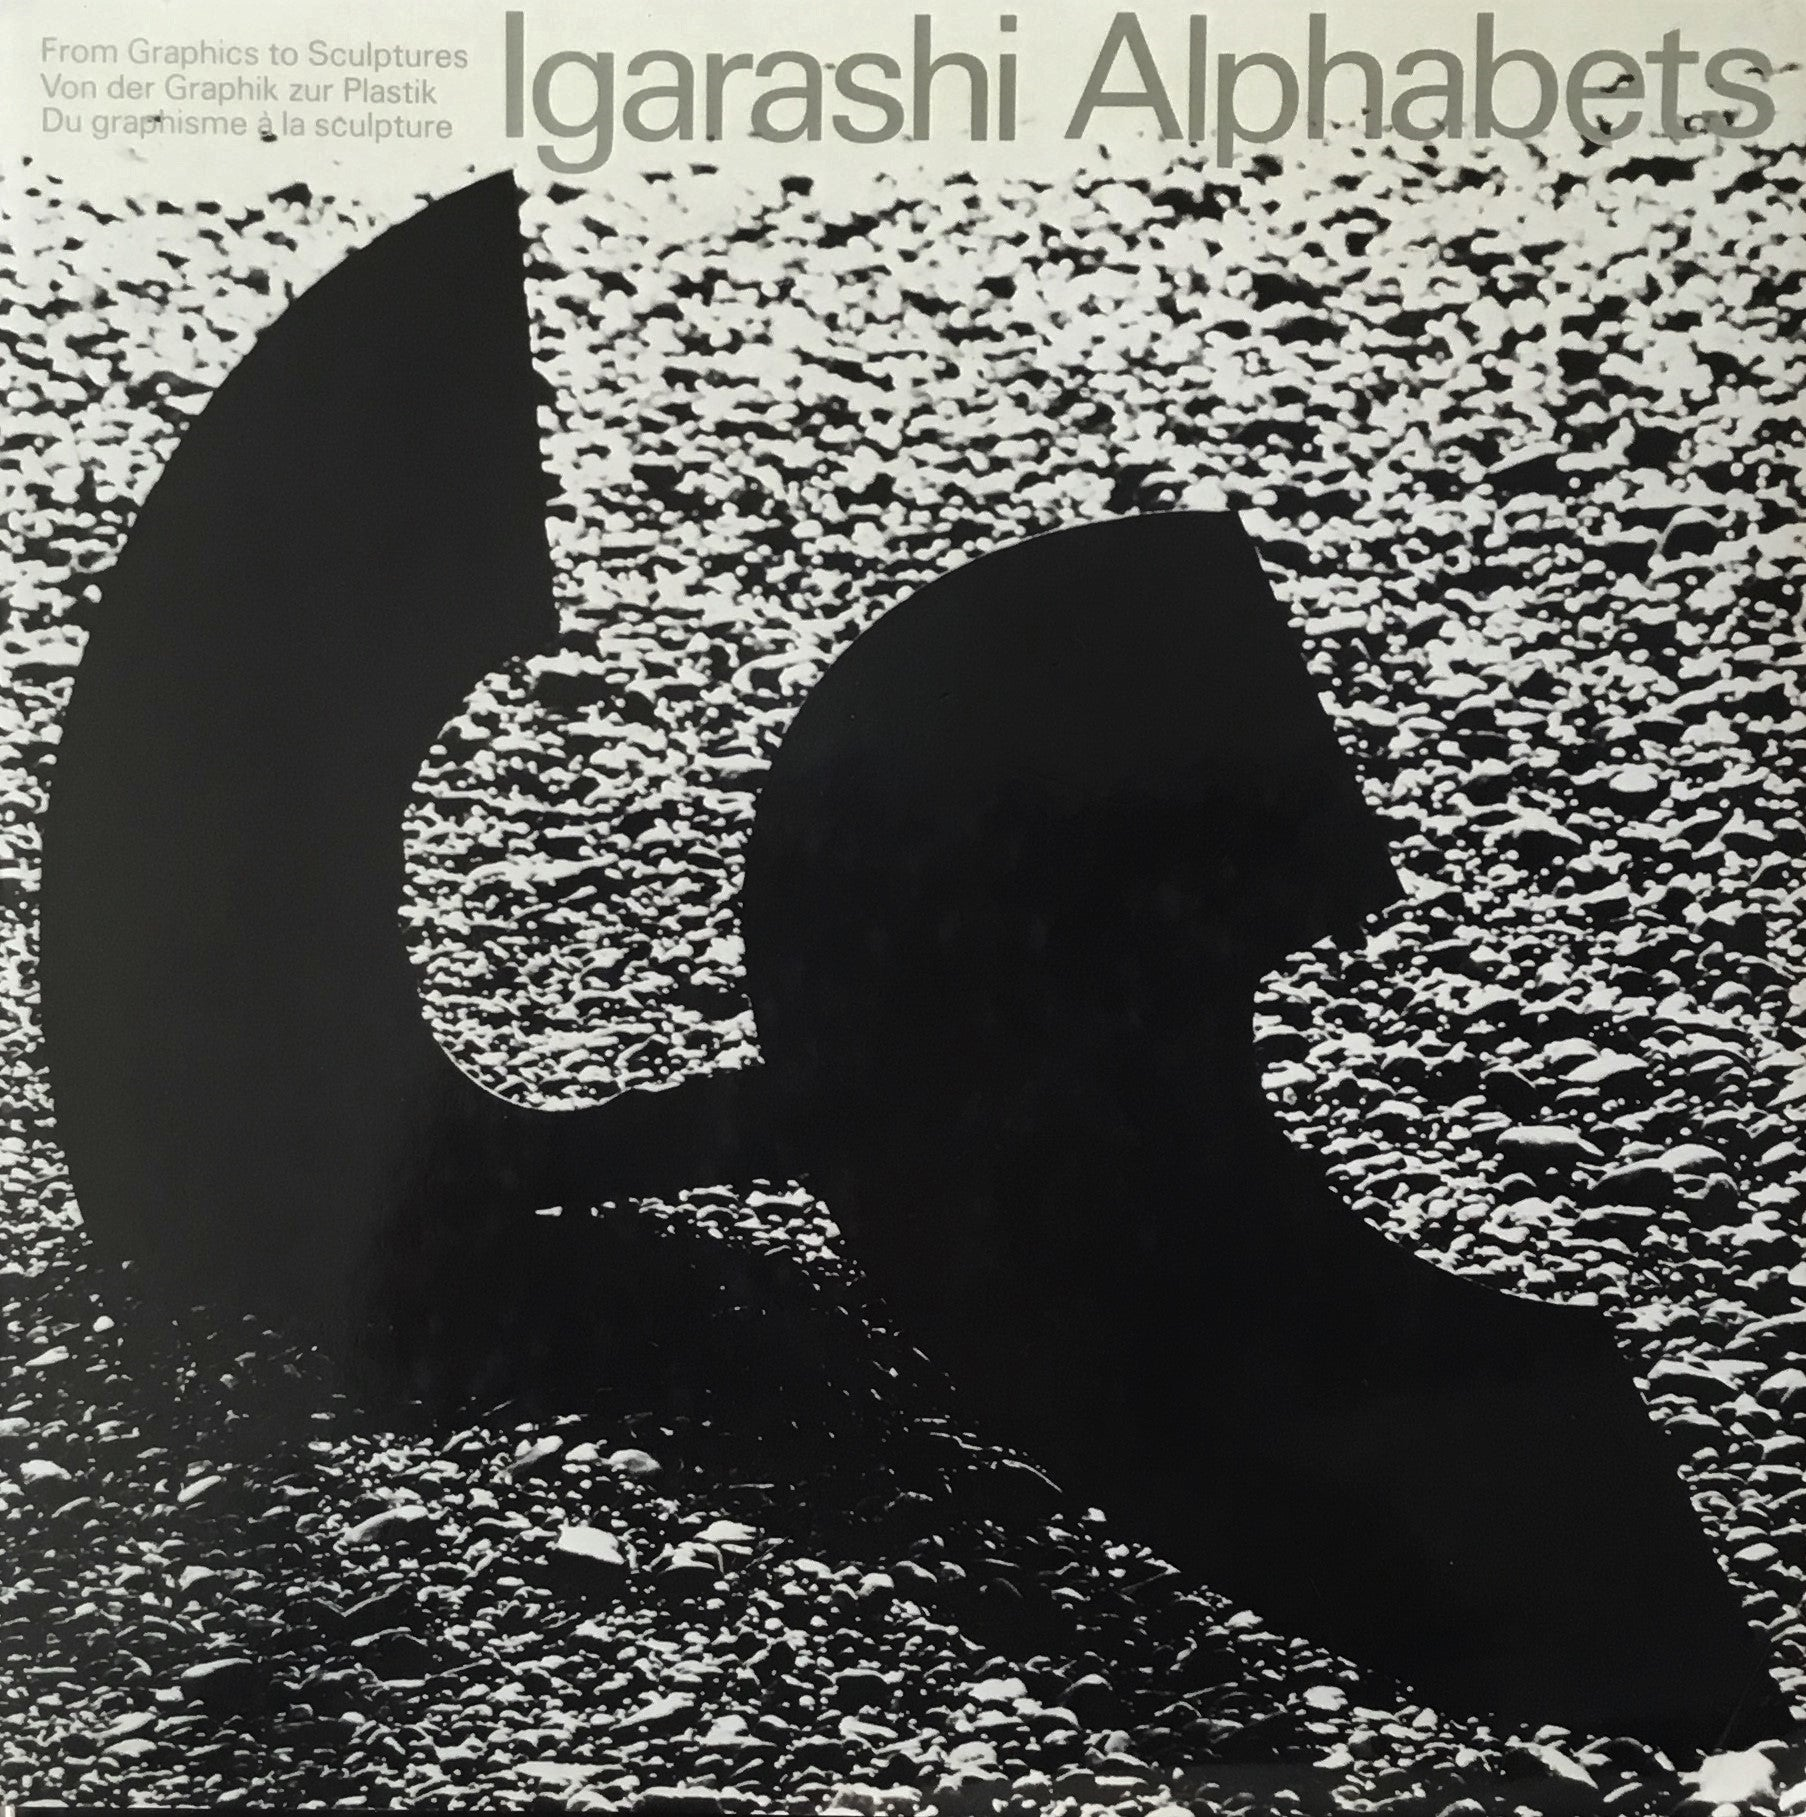 Igarashi Alphabets From Graphics to Sculptures 五十嵐威暢